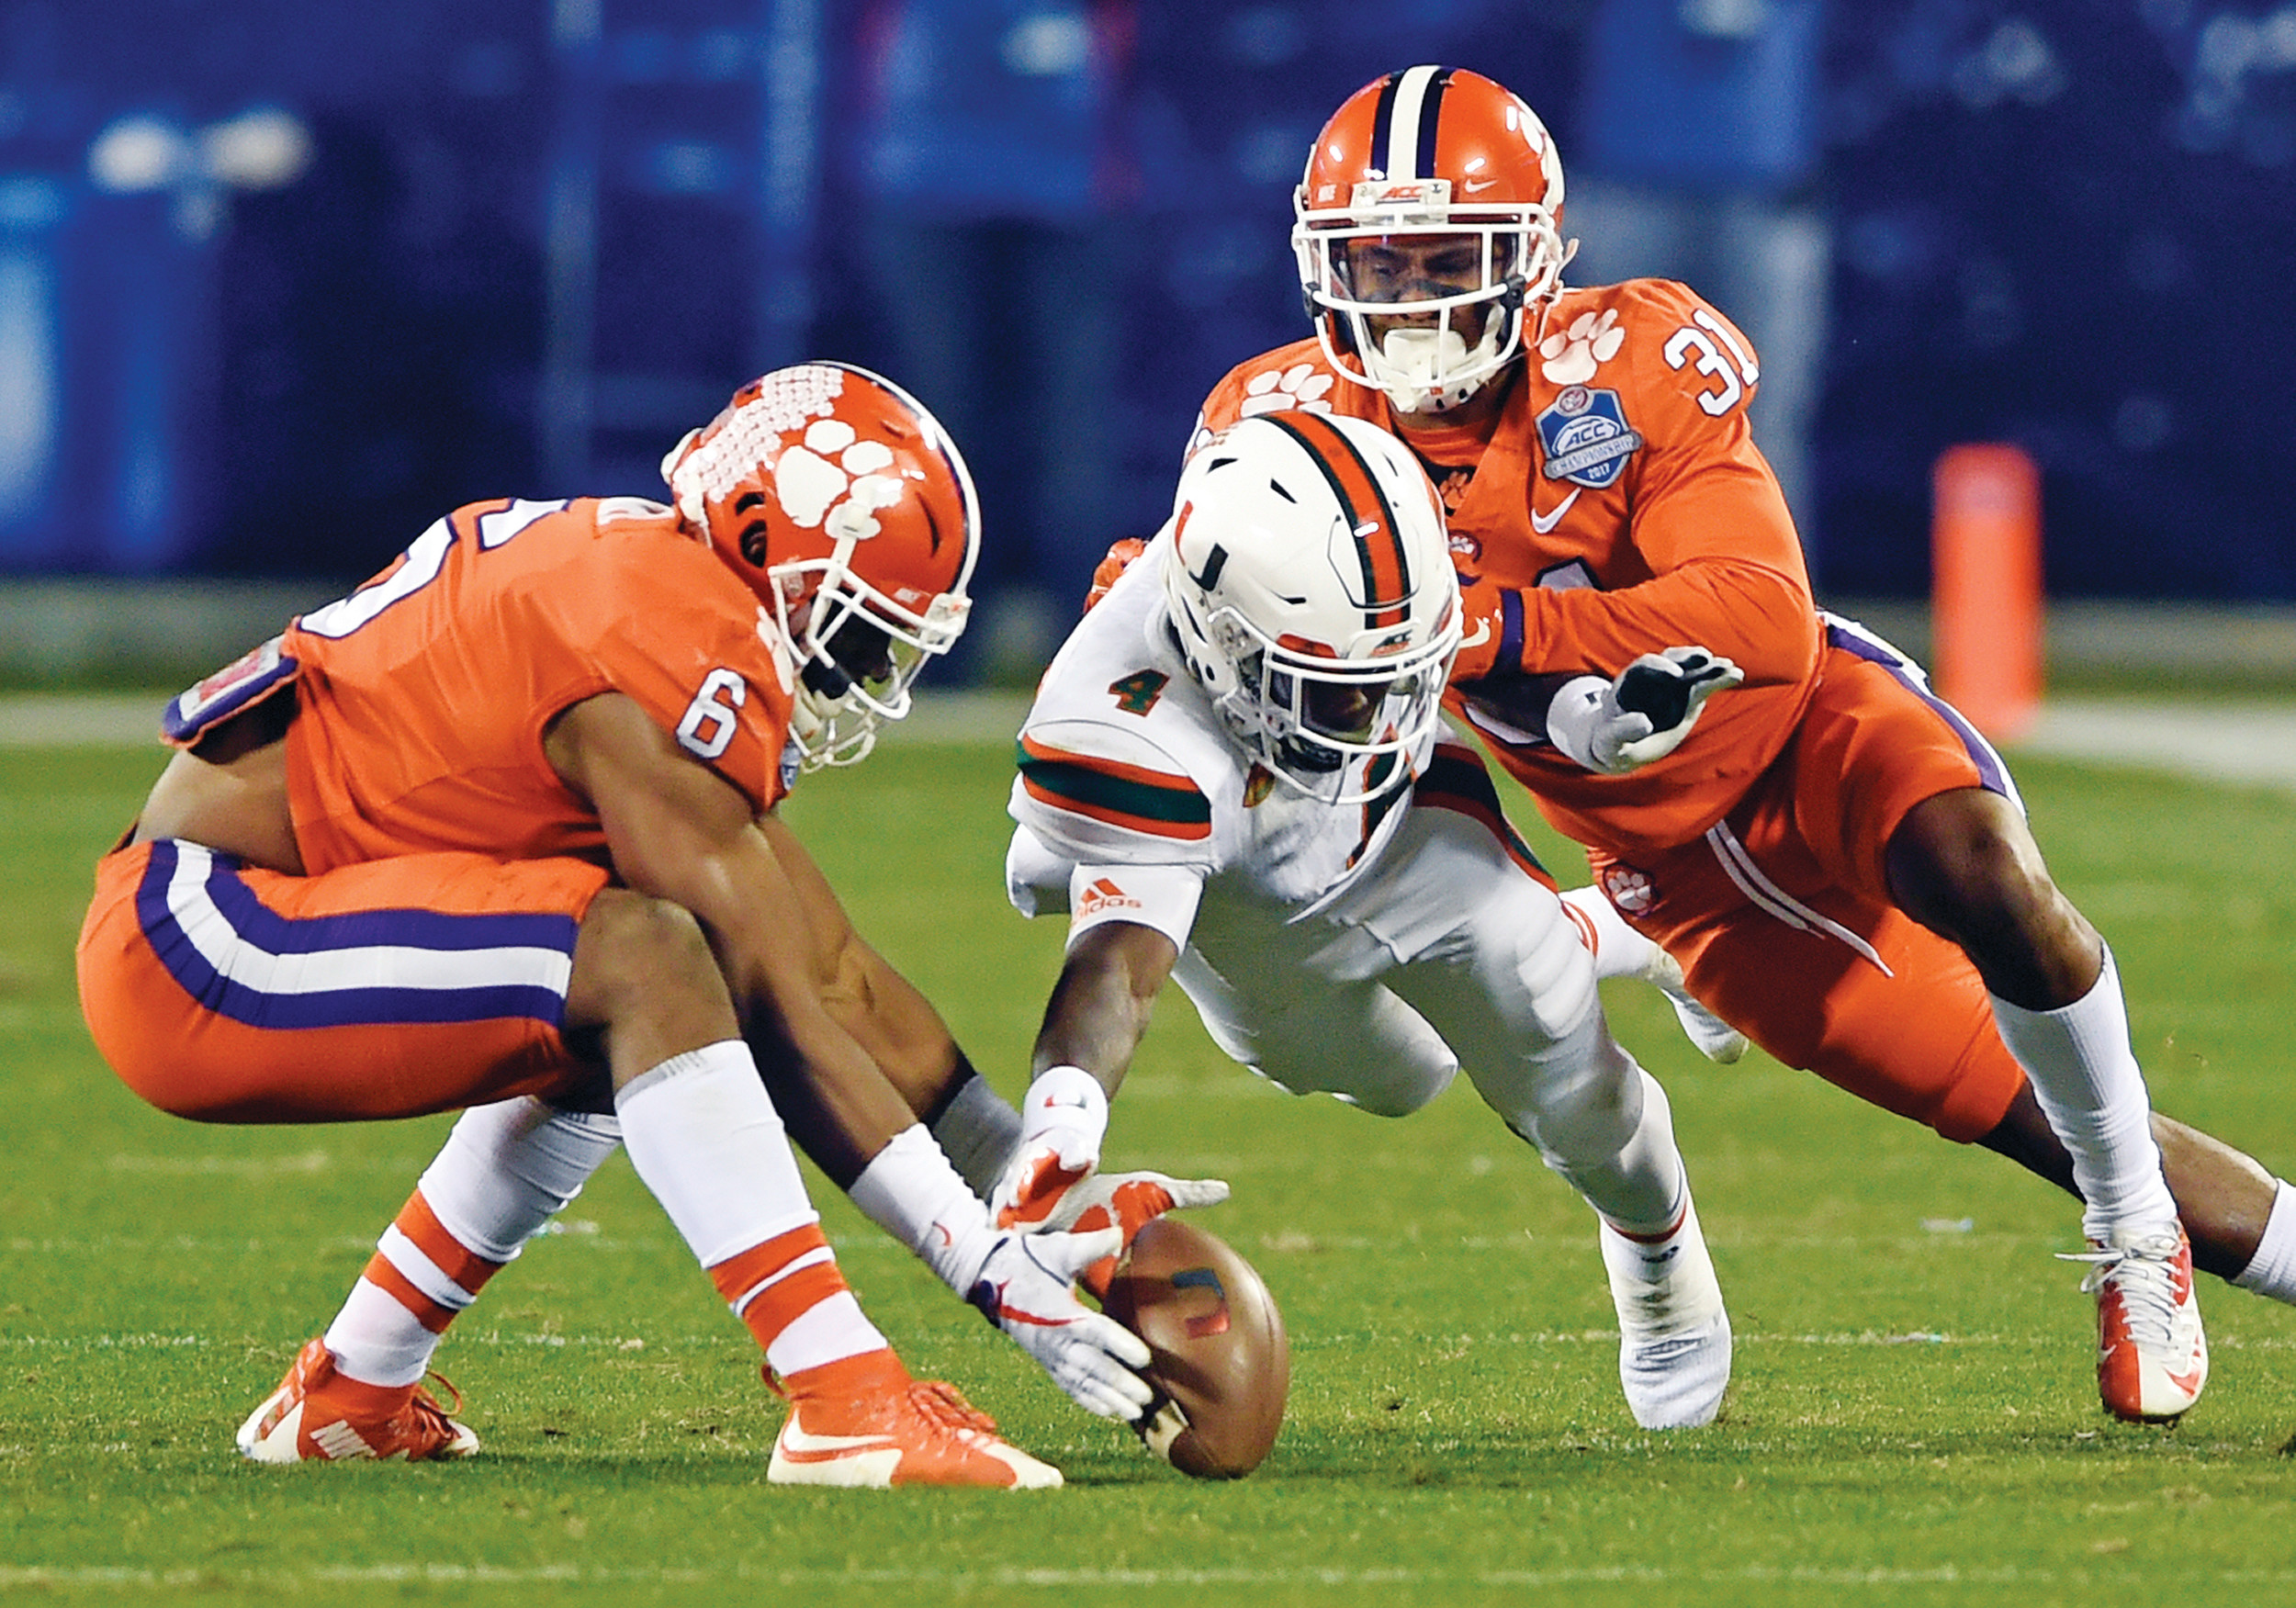 Clemson running back Adam Choice (26) runs against Miami during the second half of the Atlantic Coast Conference championship game on Saturday in Charlotte.